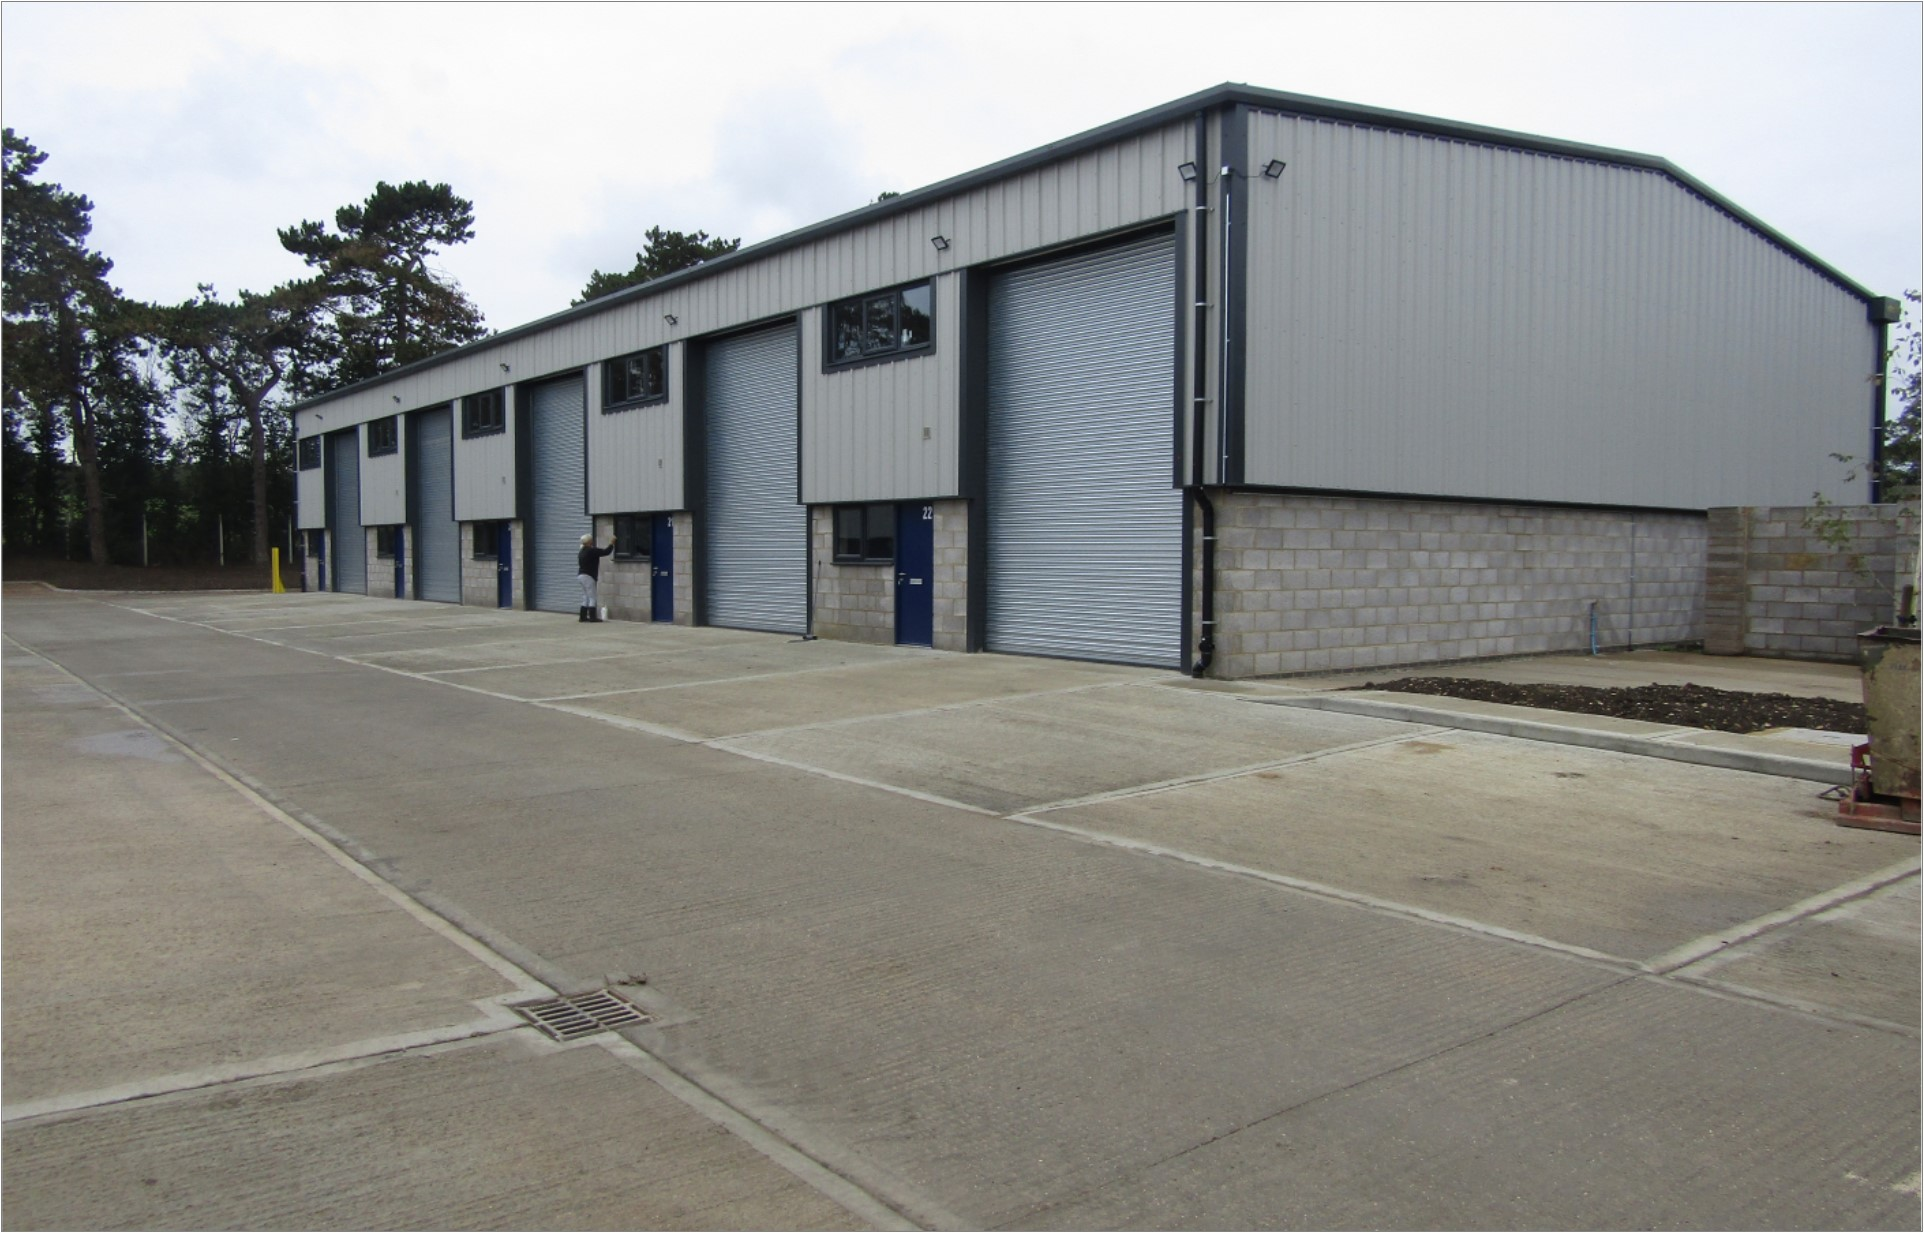 Unit 22, The Firs, Watermill Industrial Estate, Aspenden Road, Buntingford